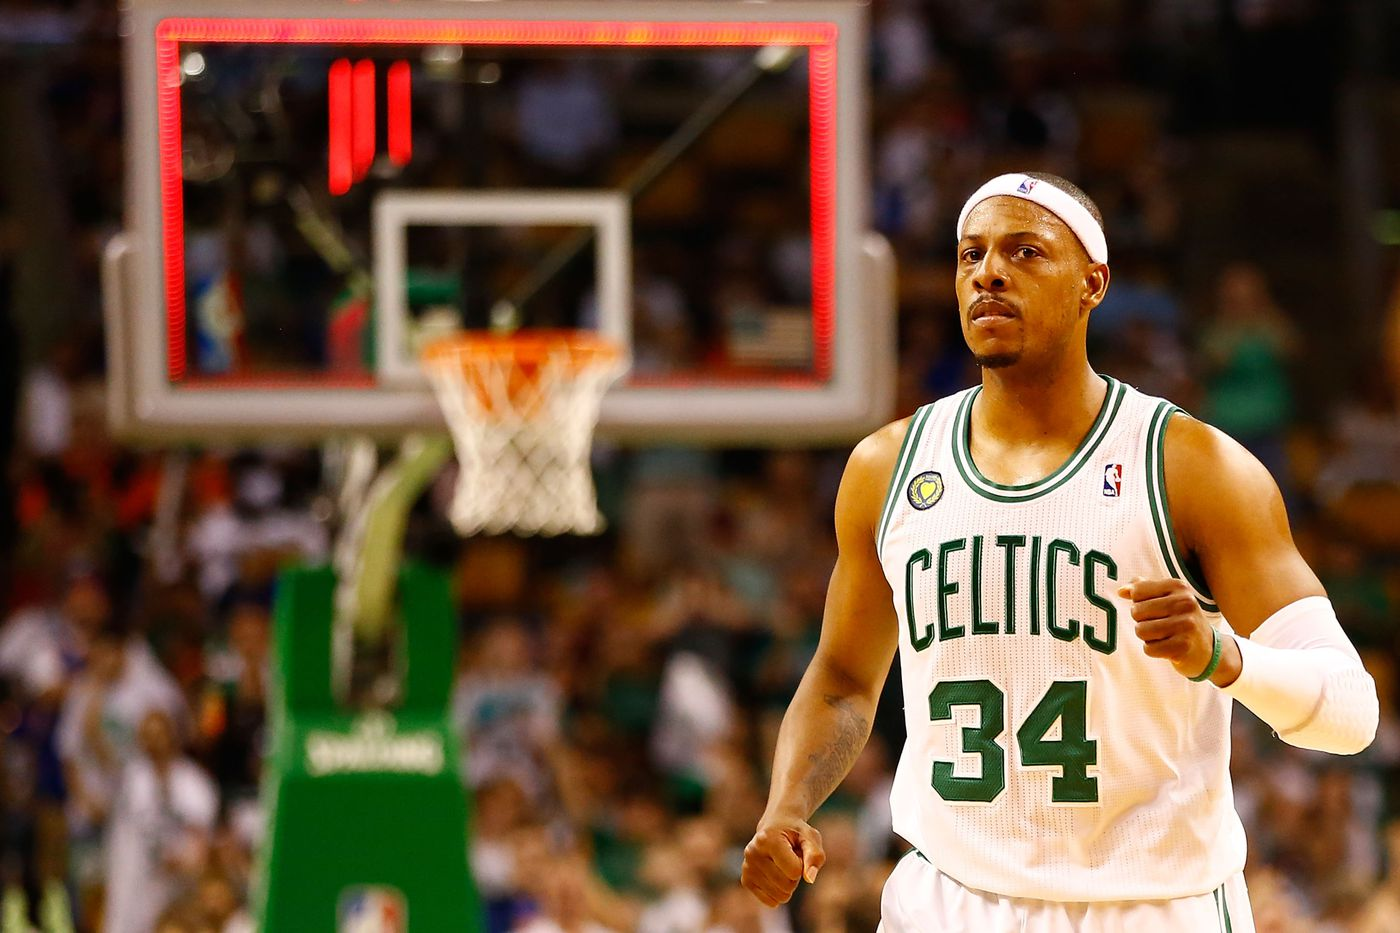 Recounting some of the best Celtic nicknames CelticsBlog